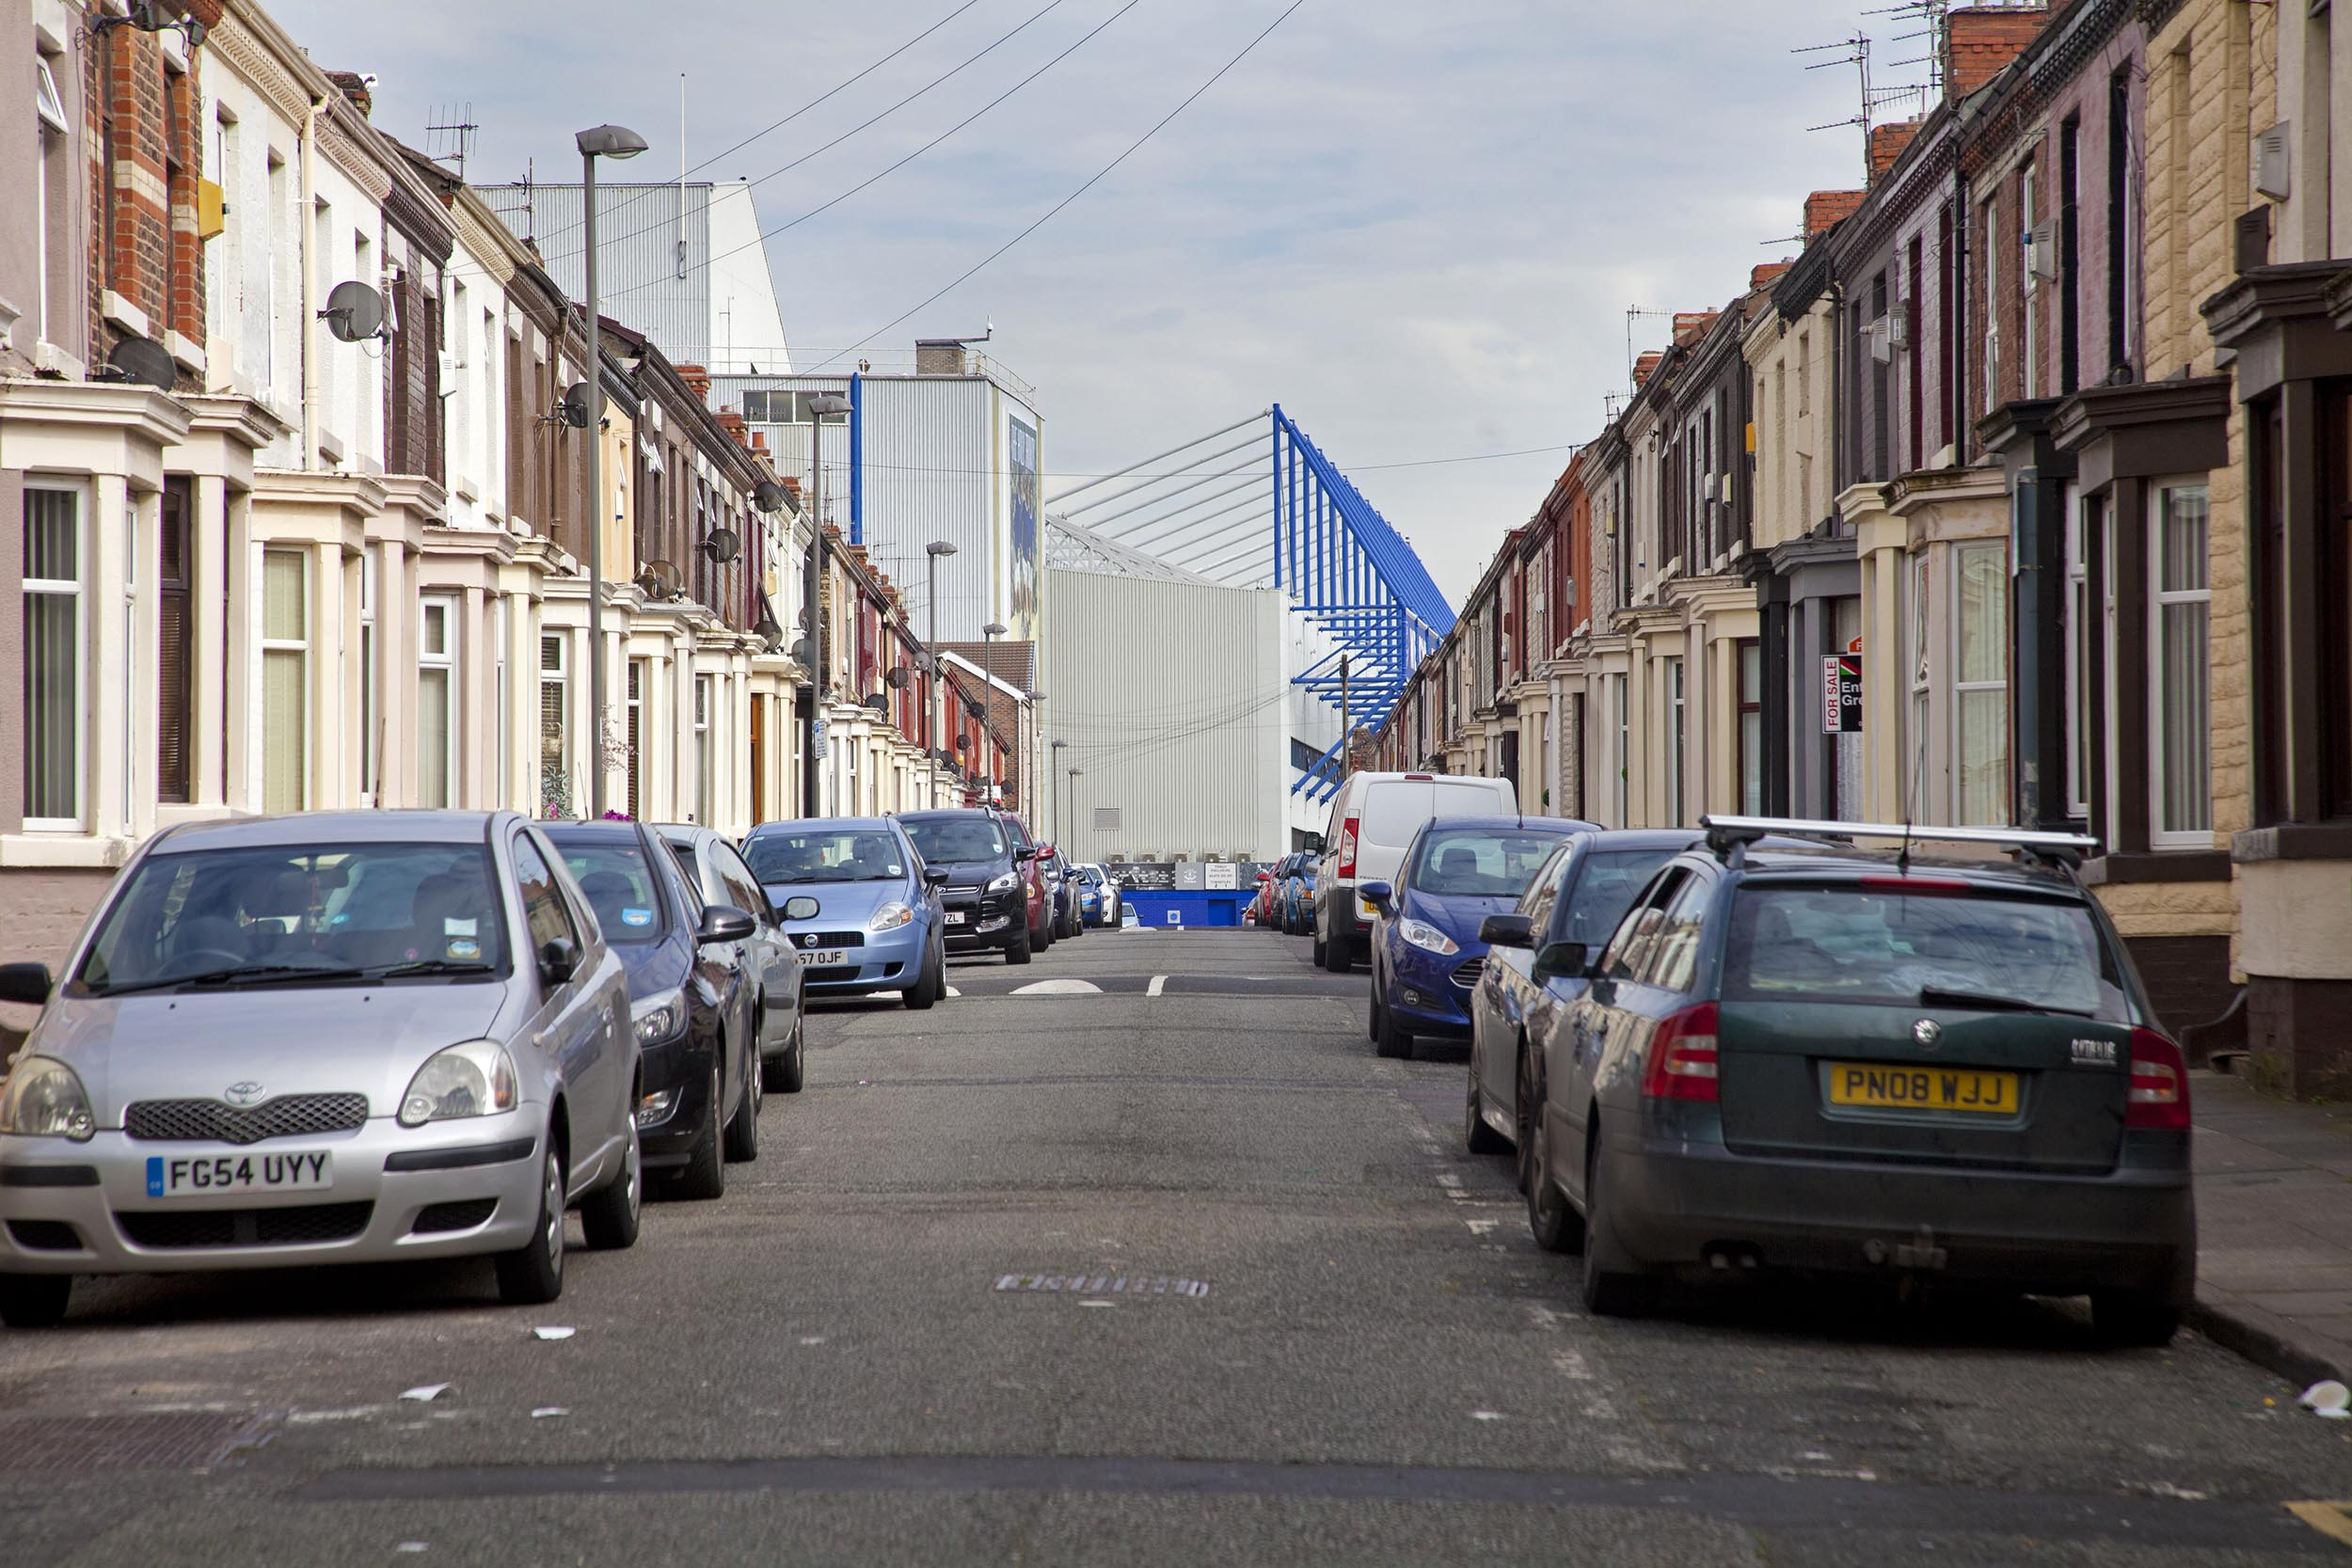 View down terrace street of Goodison Park, Liverpool - Documentary Photography